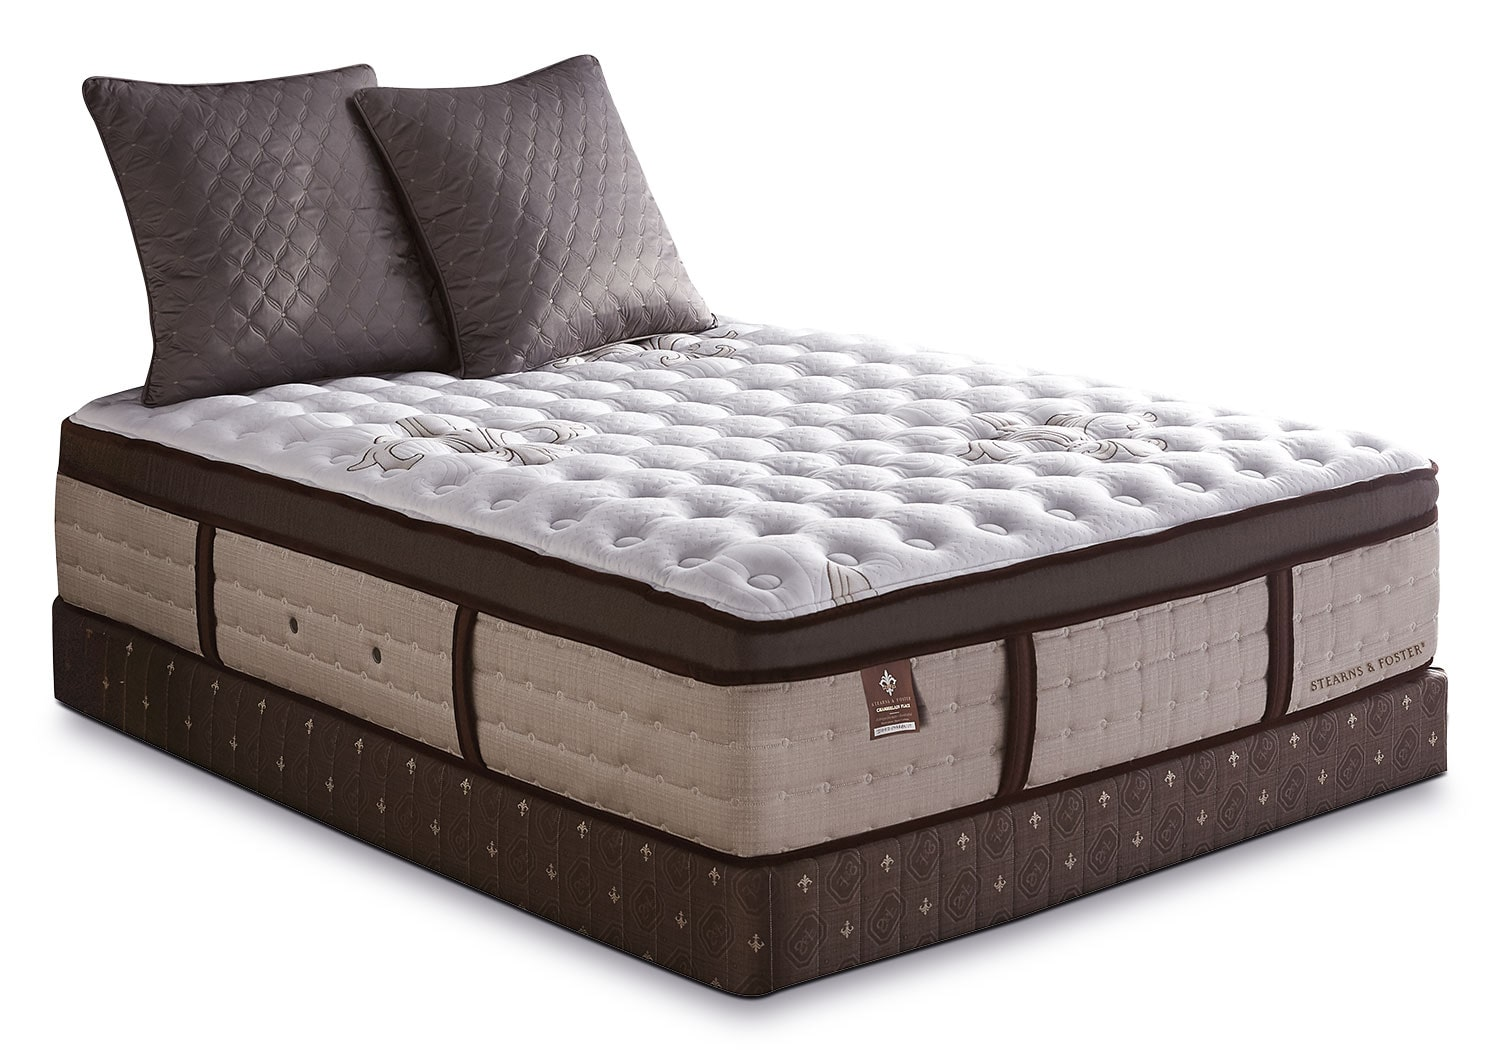 Mattresses and Bedding - Stearns & Foster Chamberlain Place Euro-Top Plush Full Mattress Set